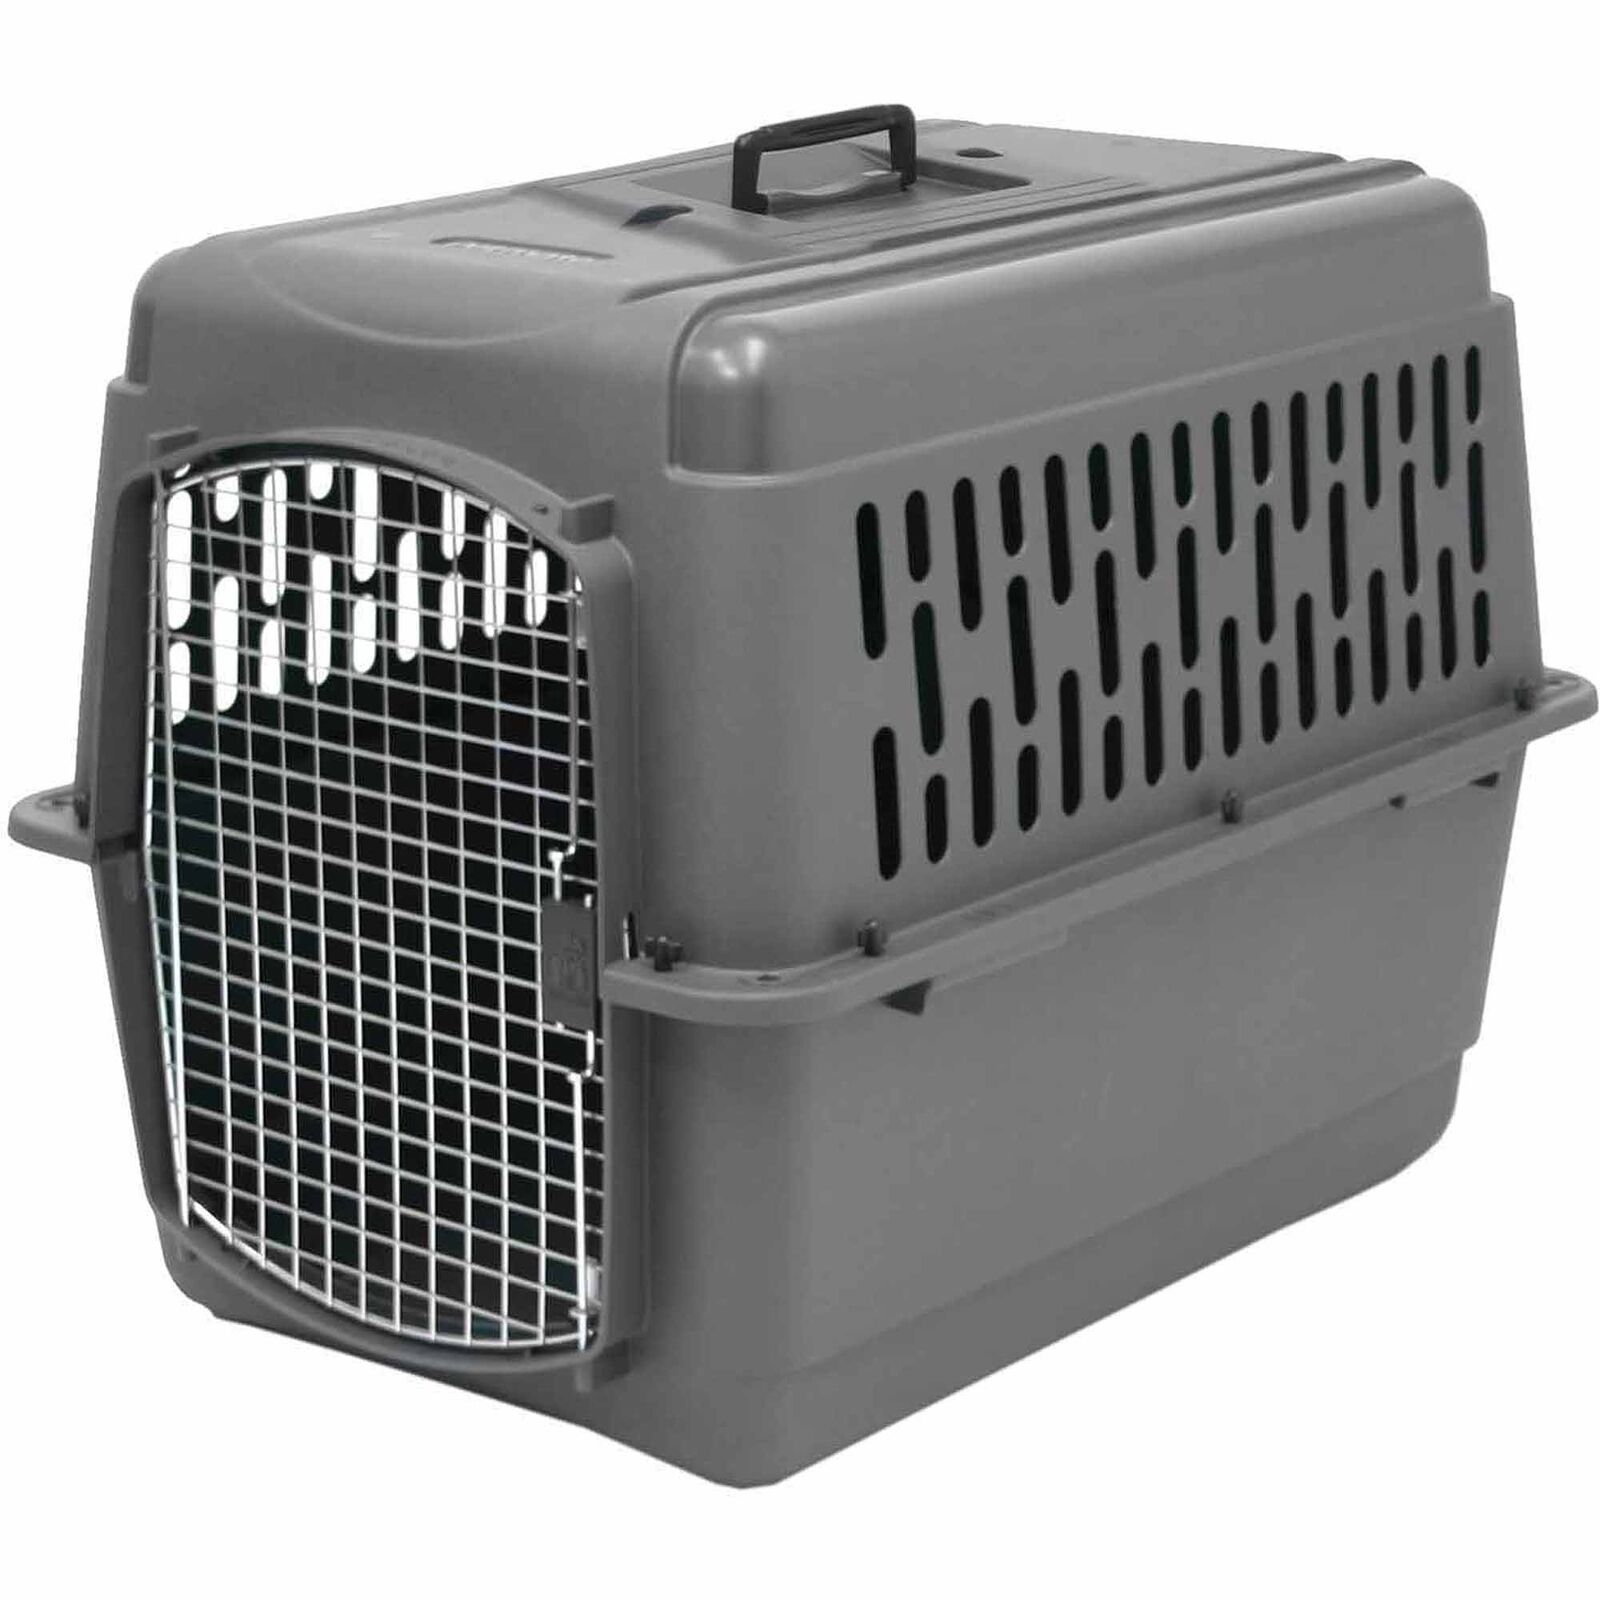 Safety Pet Dog Crate Cage Porter Large Travel Heavyduty Plastic Airline 25-30 lb